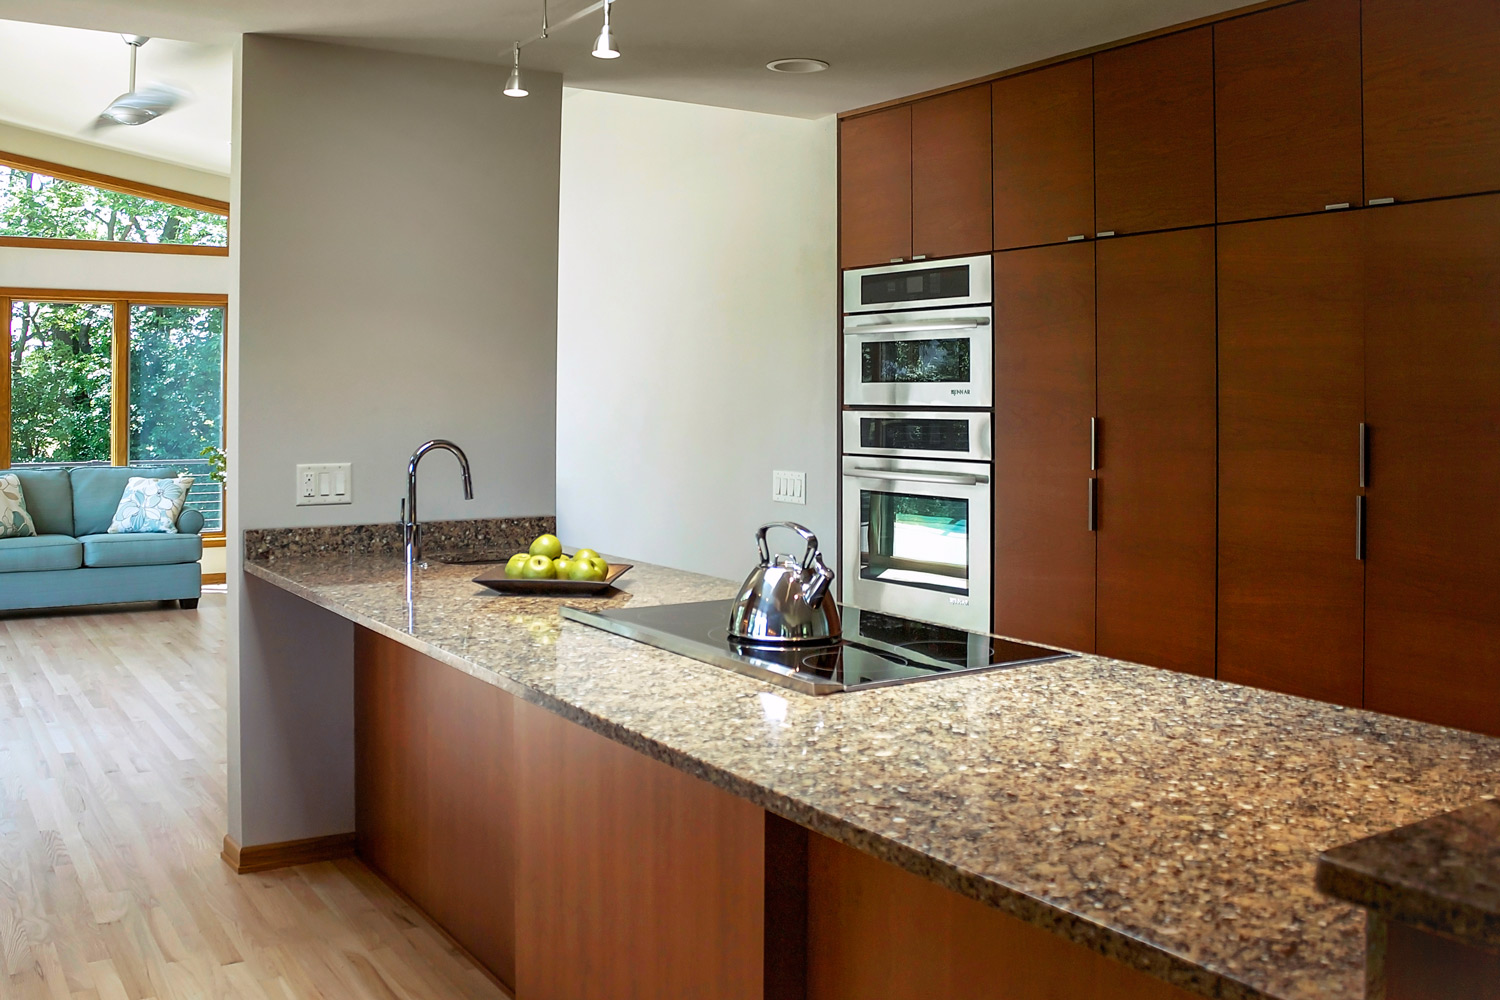 Kitchen Cabinet Doors Full Overlay Partial Overlay And Inset Degnan Design Build Remodel